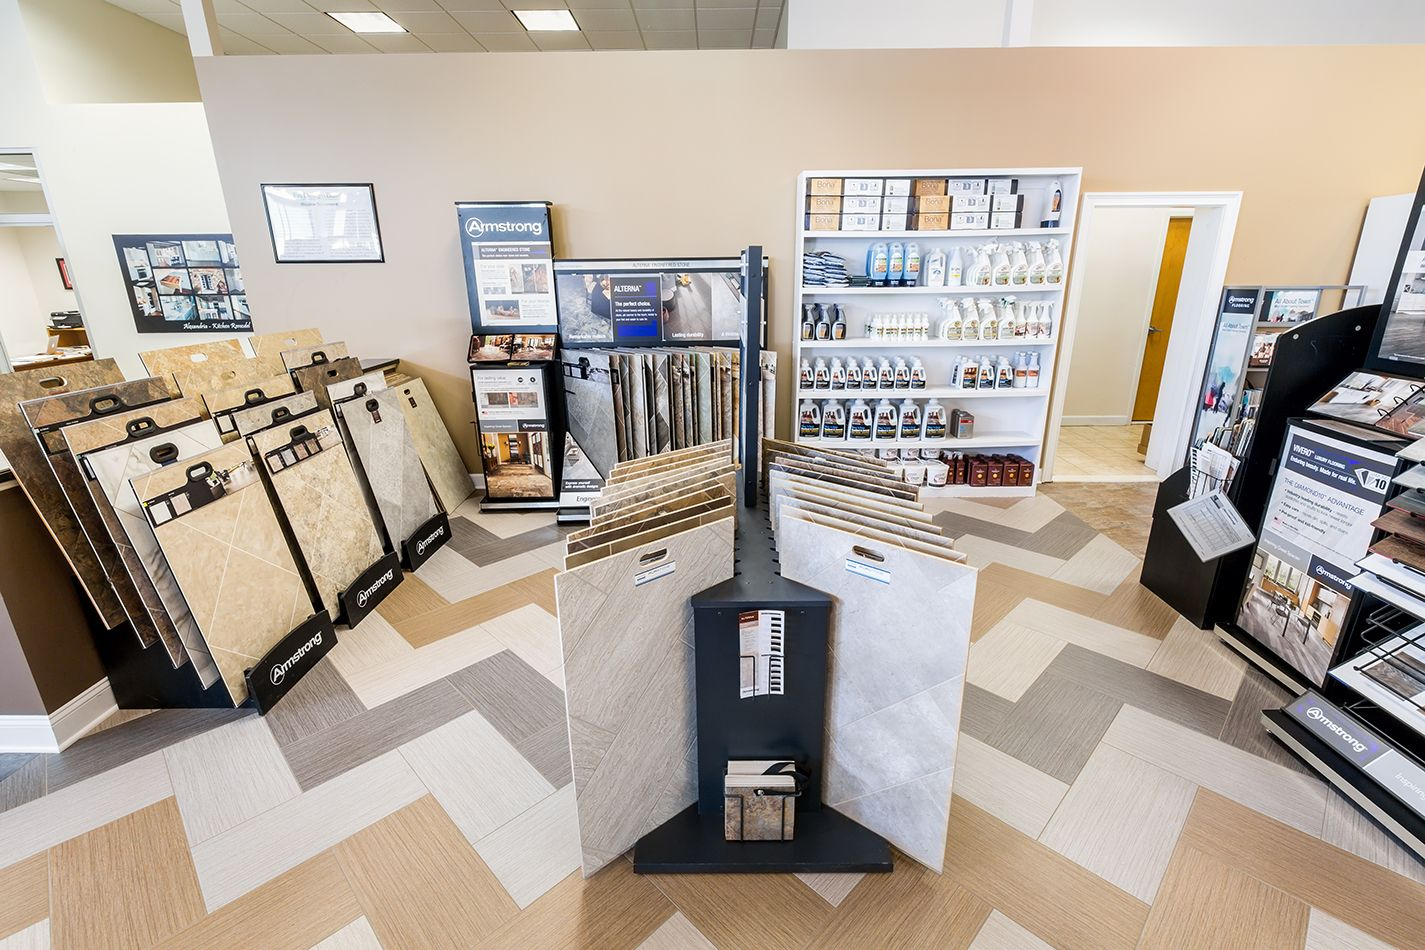 LVT is the fastest growing flooring in today's market